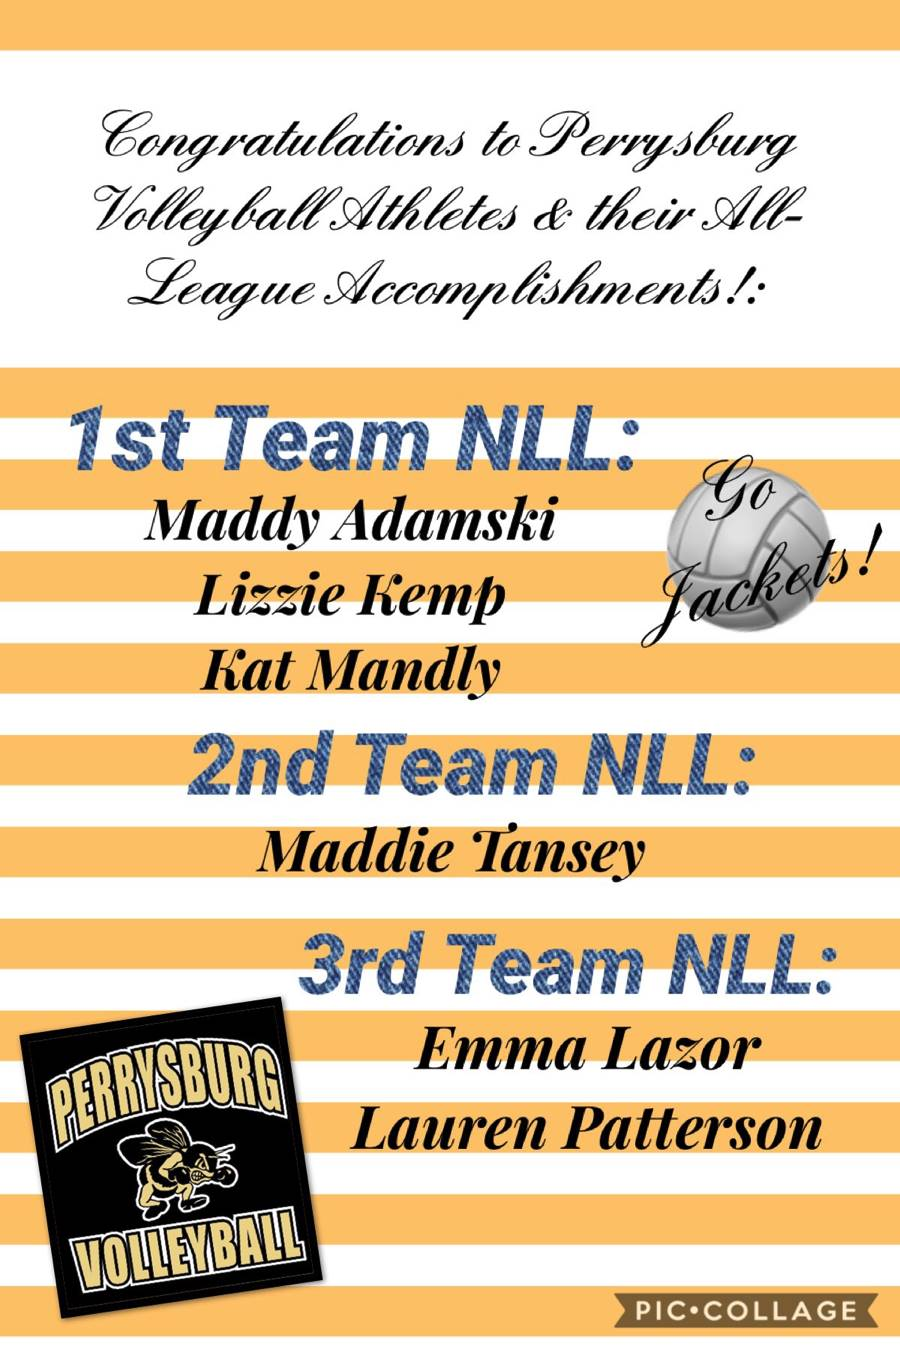 All-NLL Honors 2018